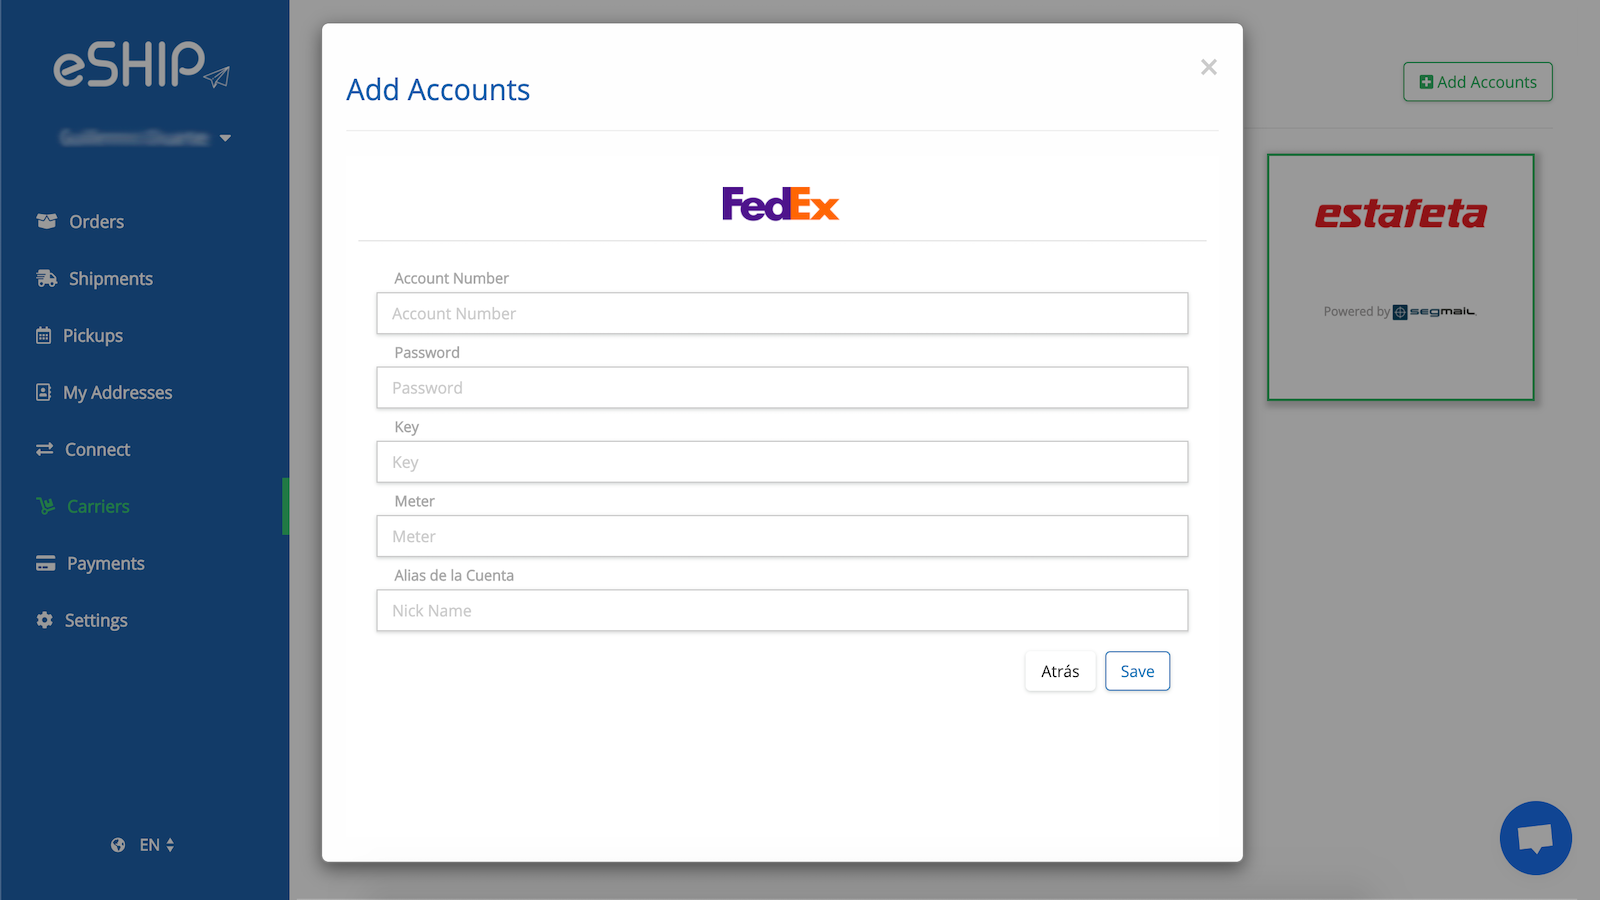 Add your accounts